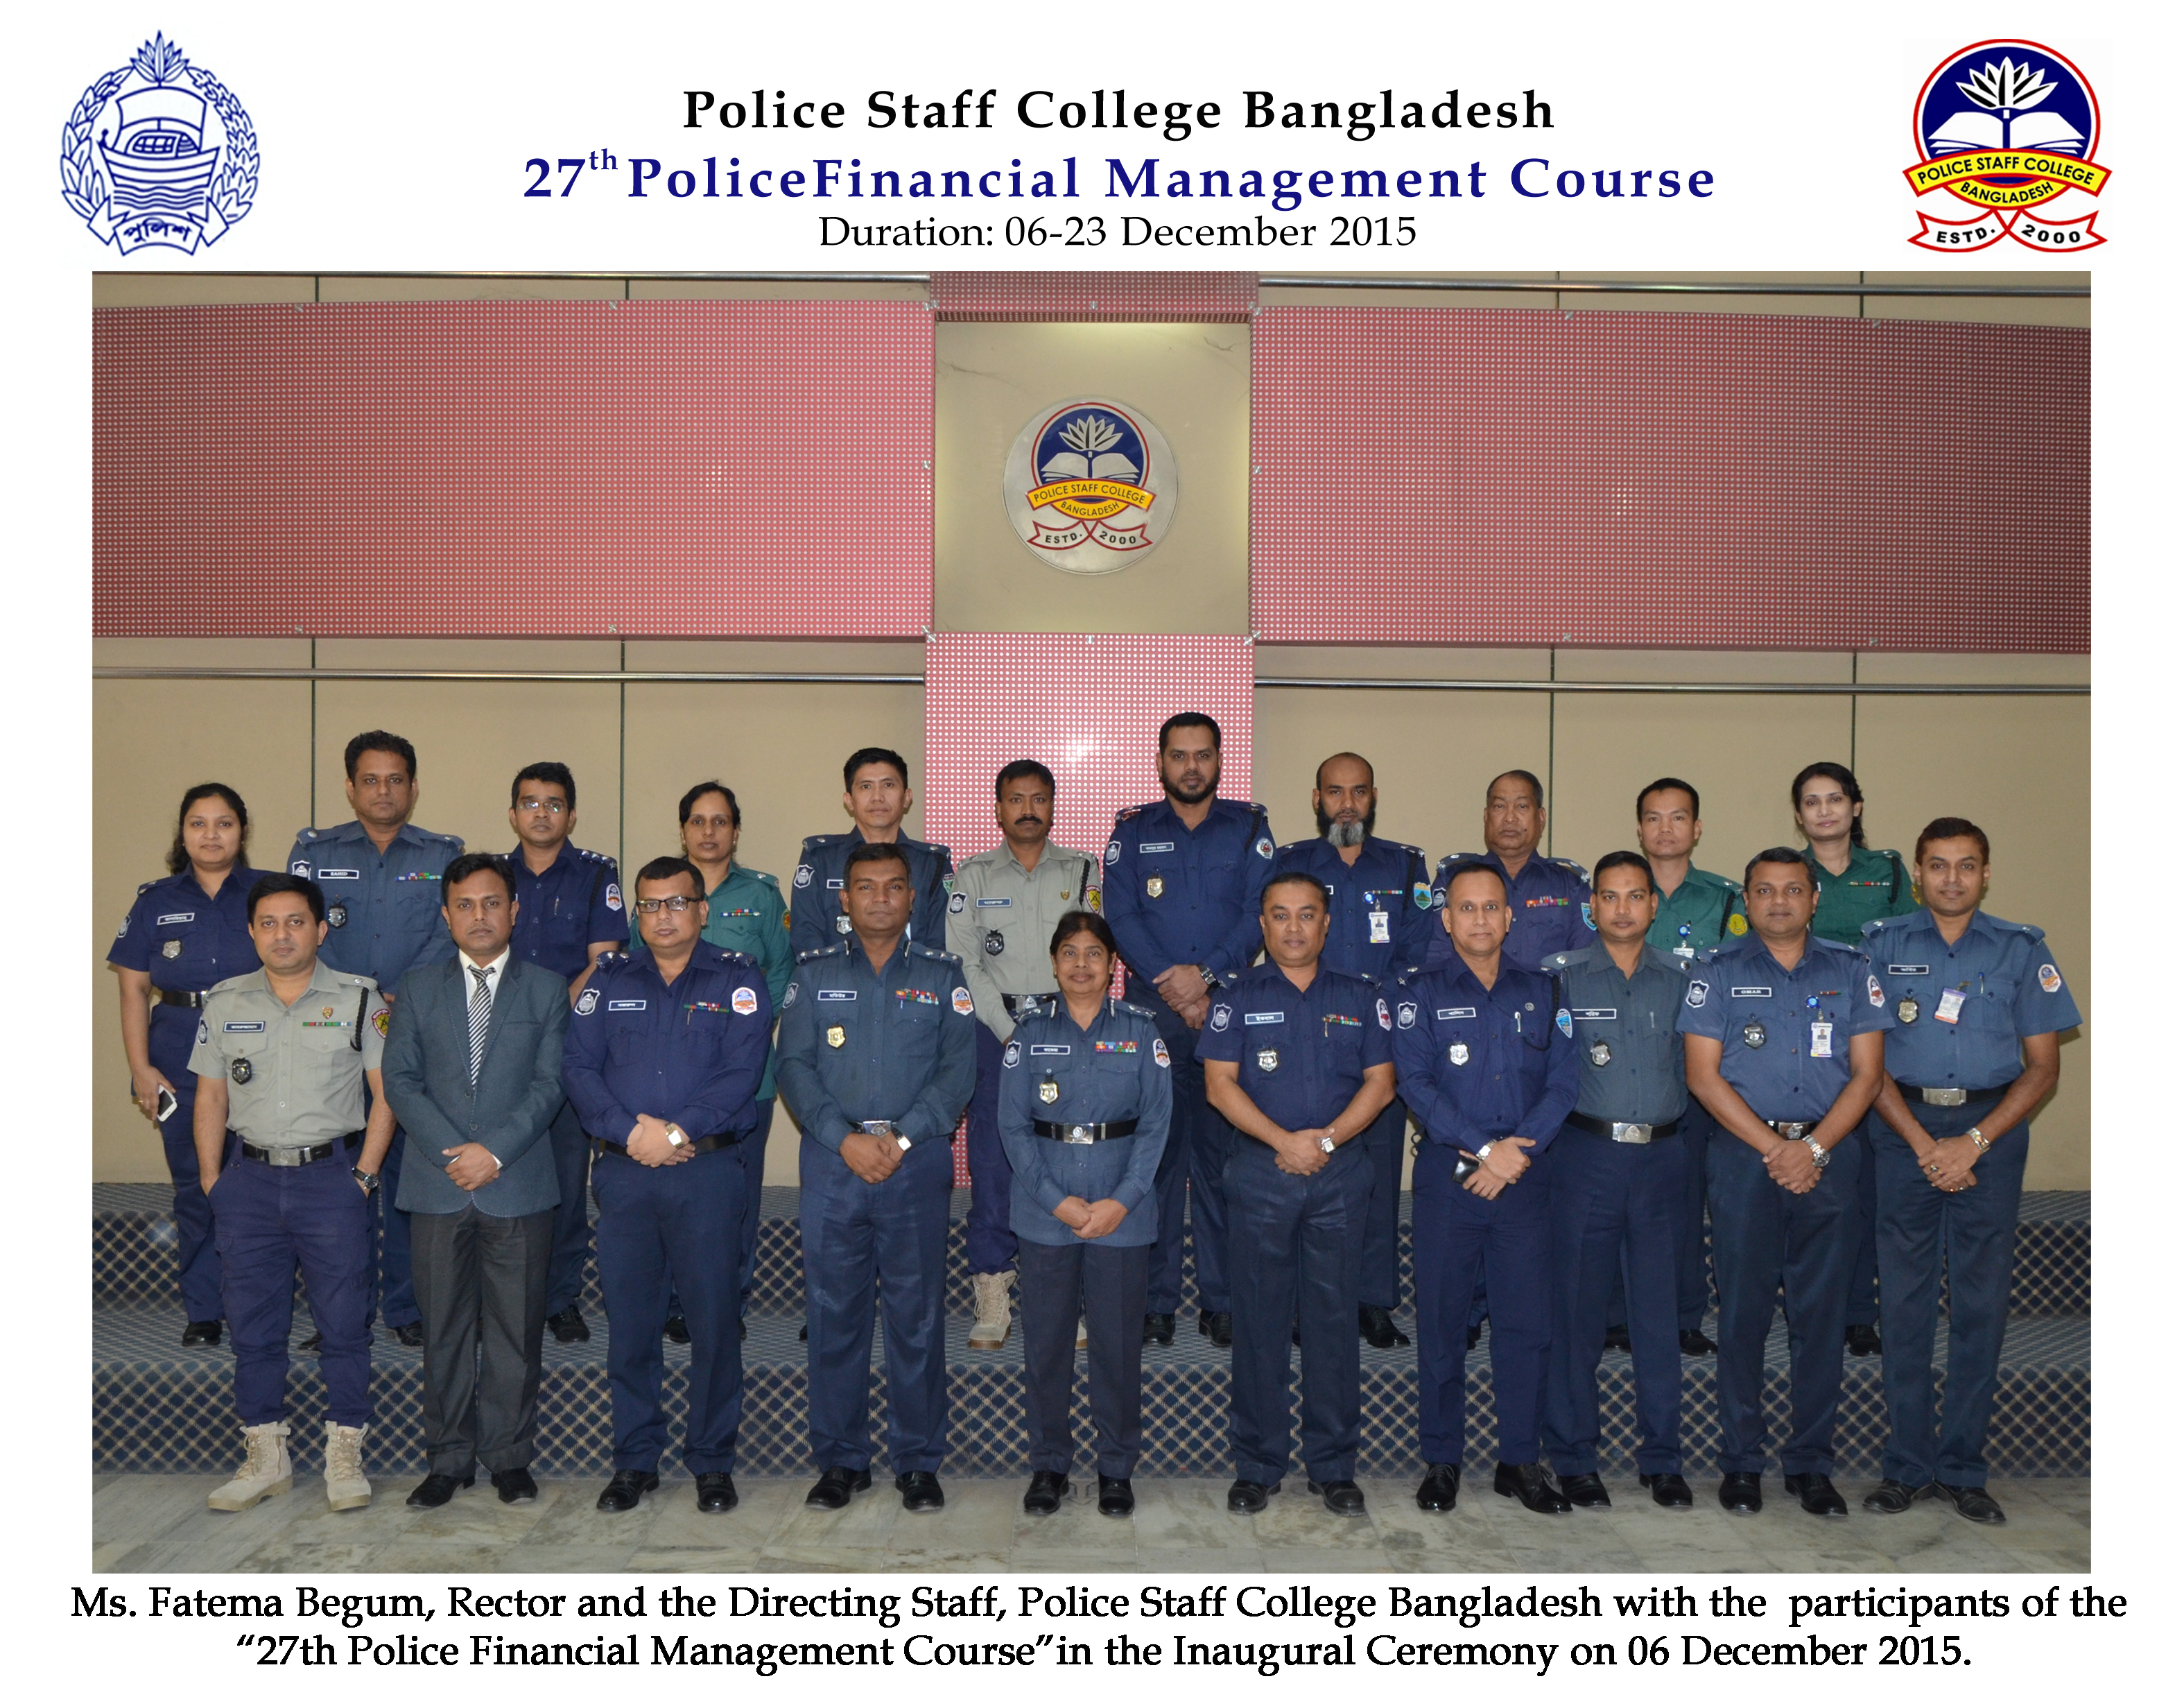 Participant of 27th Police Financial Management Course.